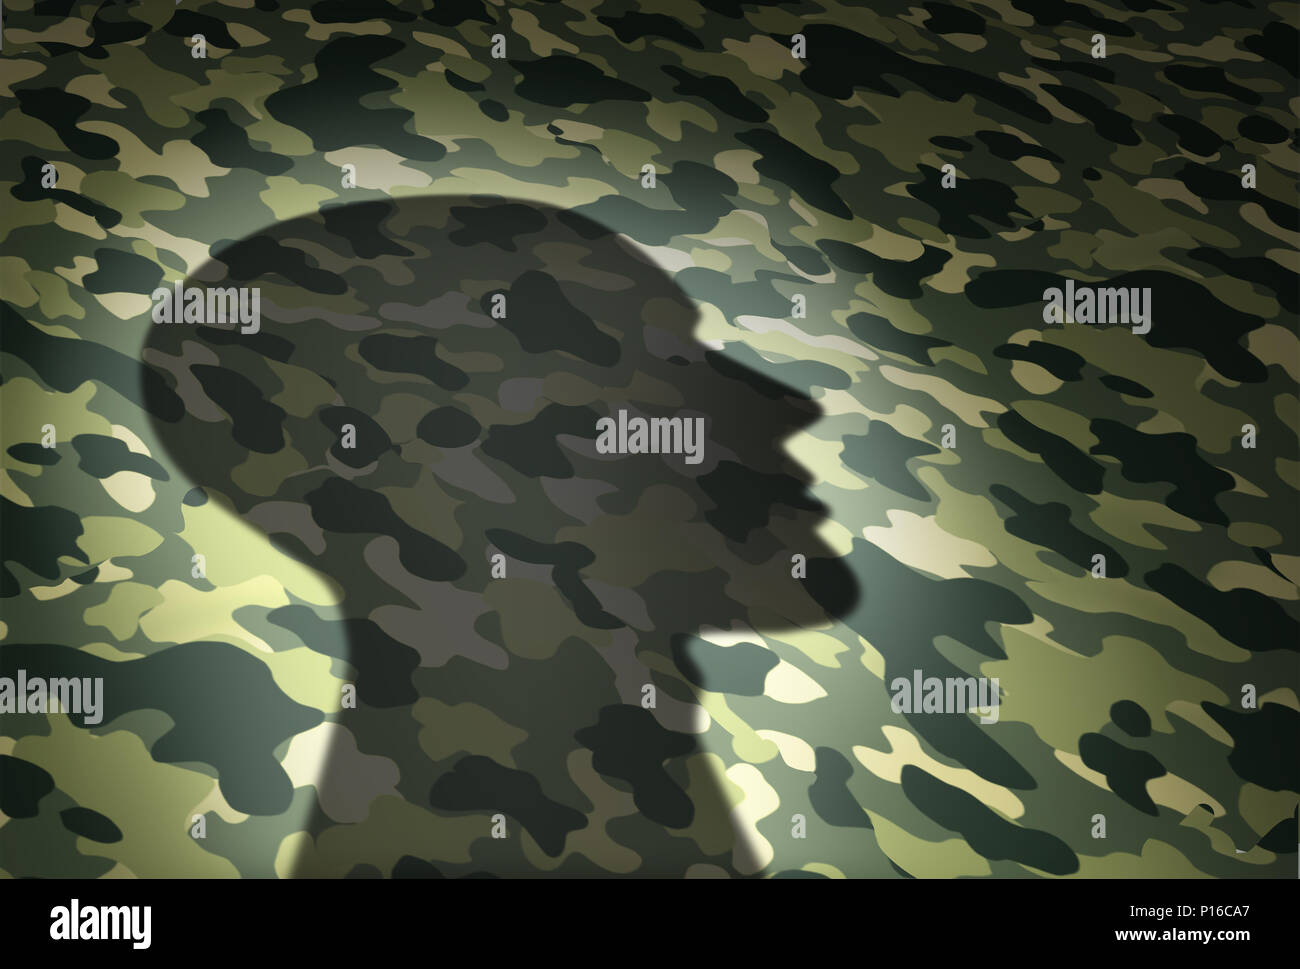 Military issues concept and veterans affairs or the VA security symbol as the shadow of a soldier on a camouflage texture in a 3D illustration style. - Stock Image